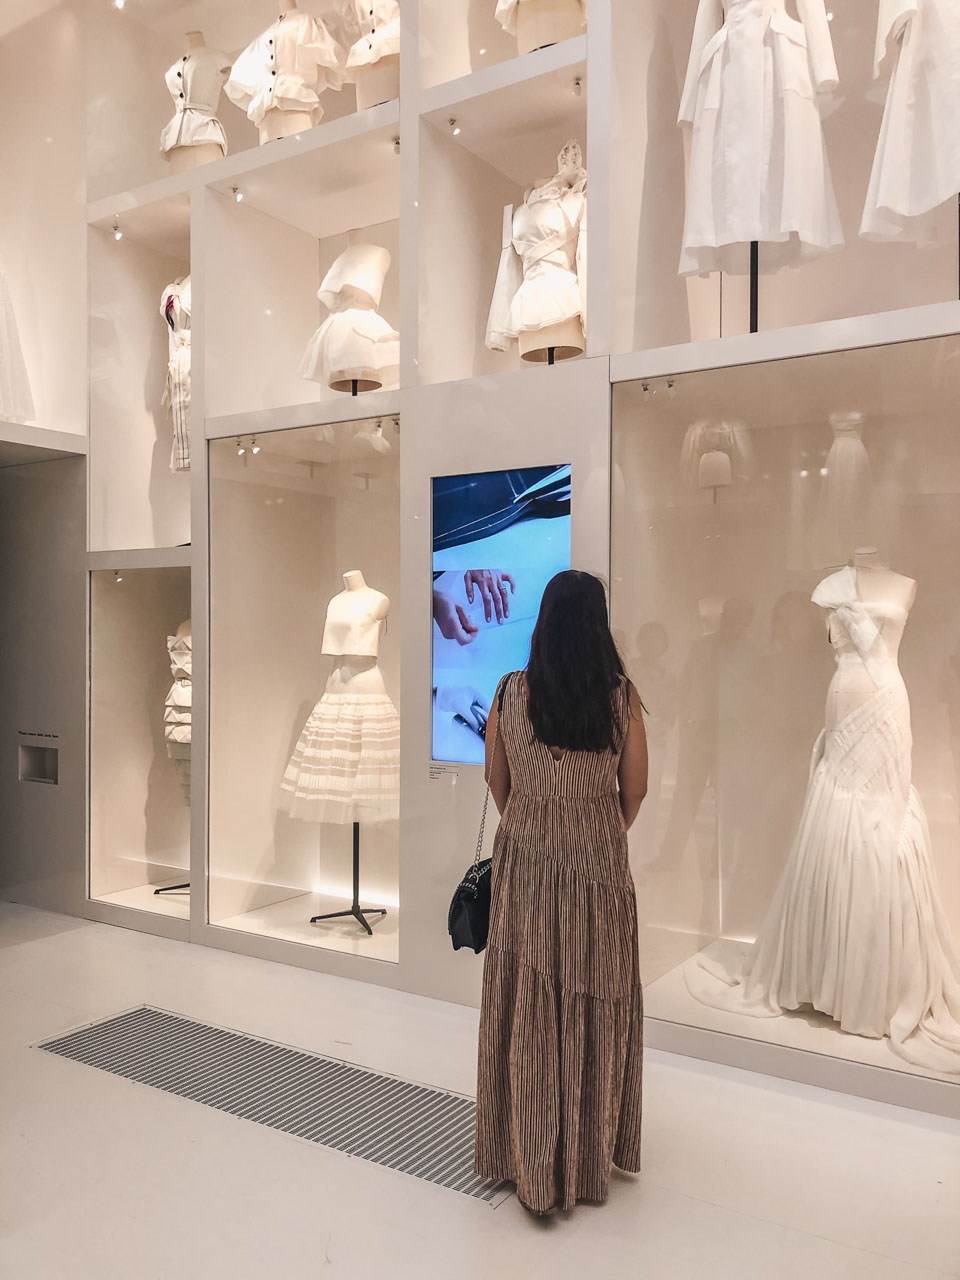 A girl looking at a floor-to-ceiling display of white garment prototypes at a Dior atelier at the Victoria and Albert Museum in London